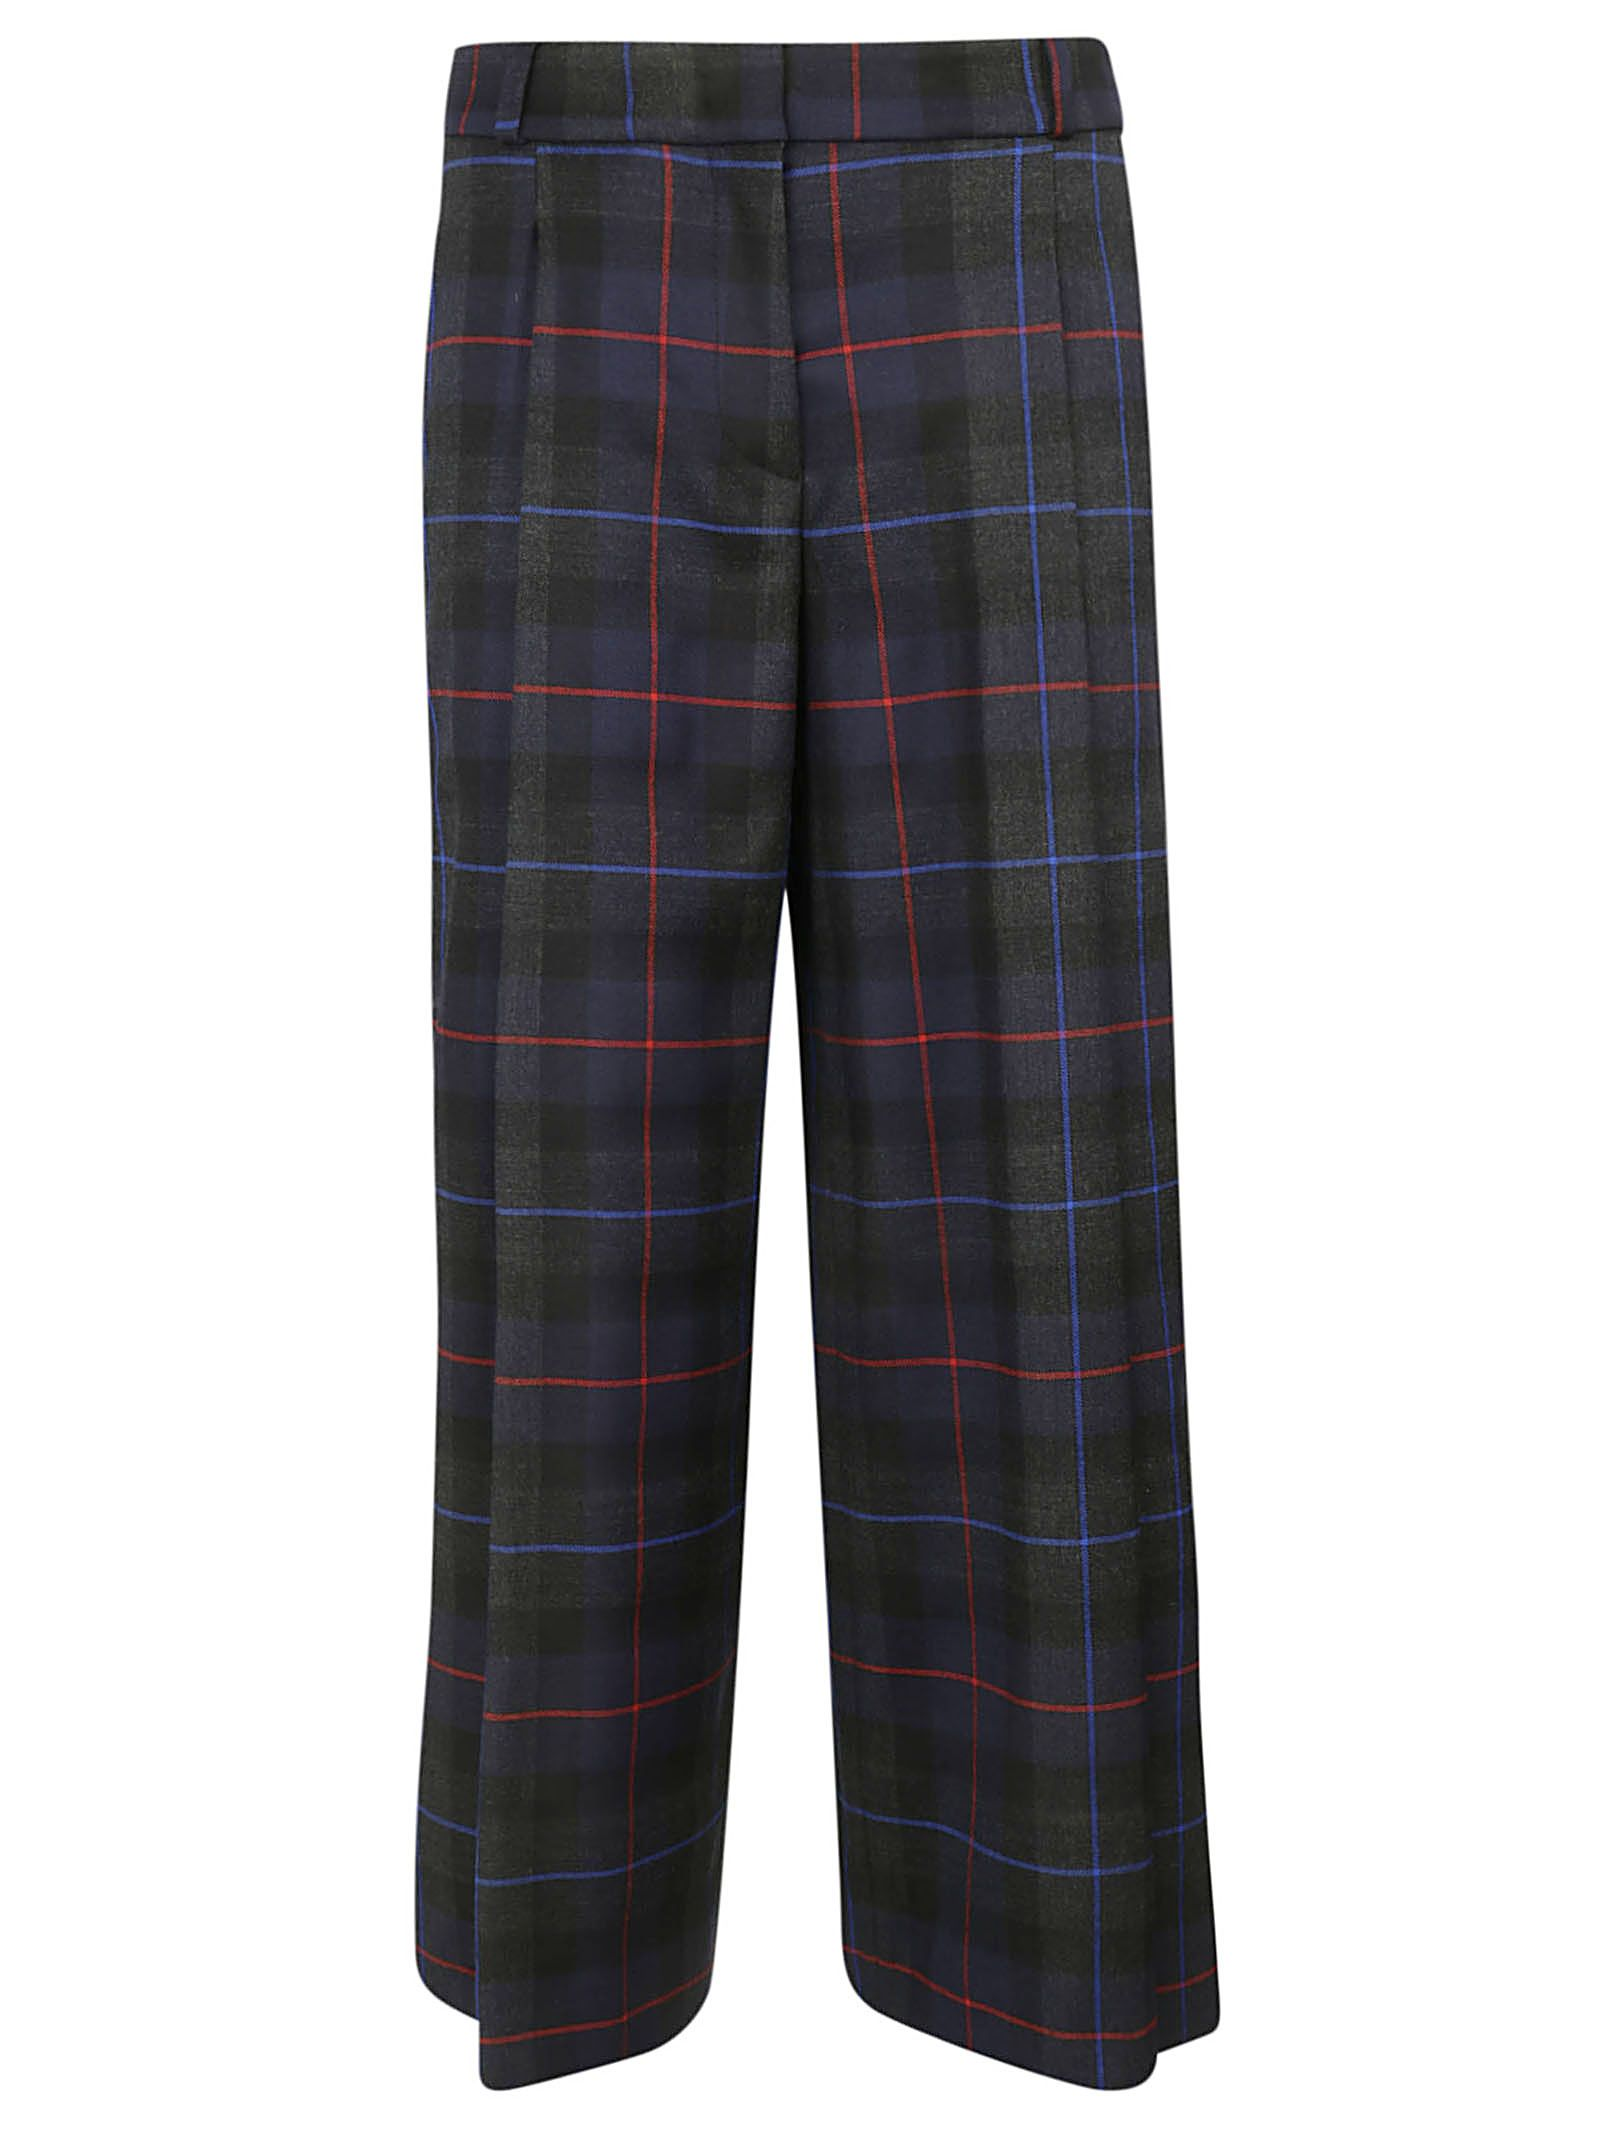 KILTIE & CO. Kiltie Checked Trousers in Tartan Navy